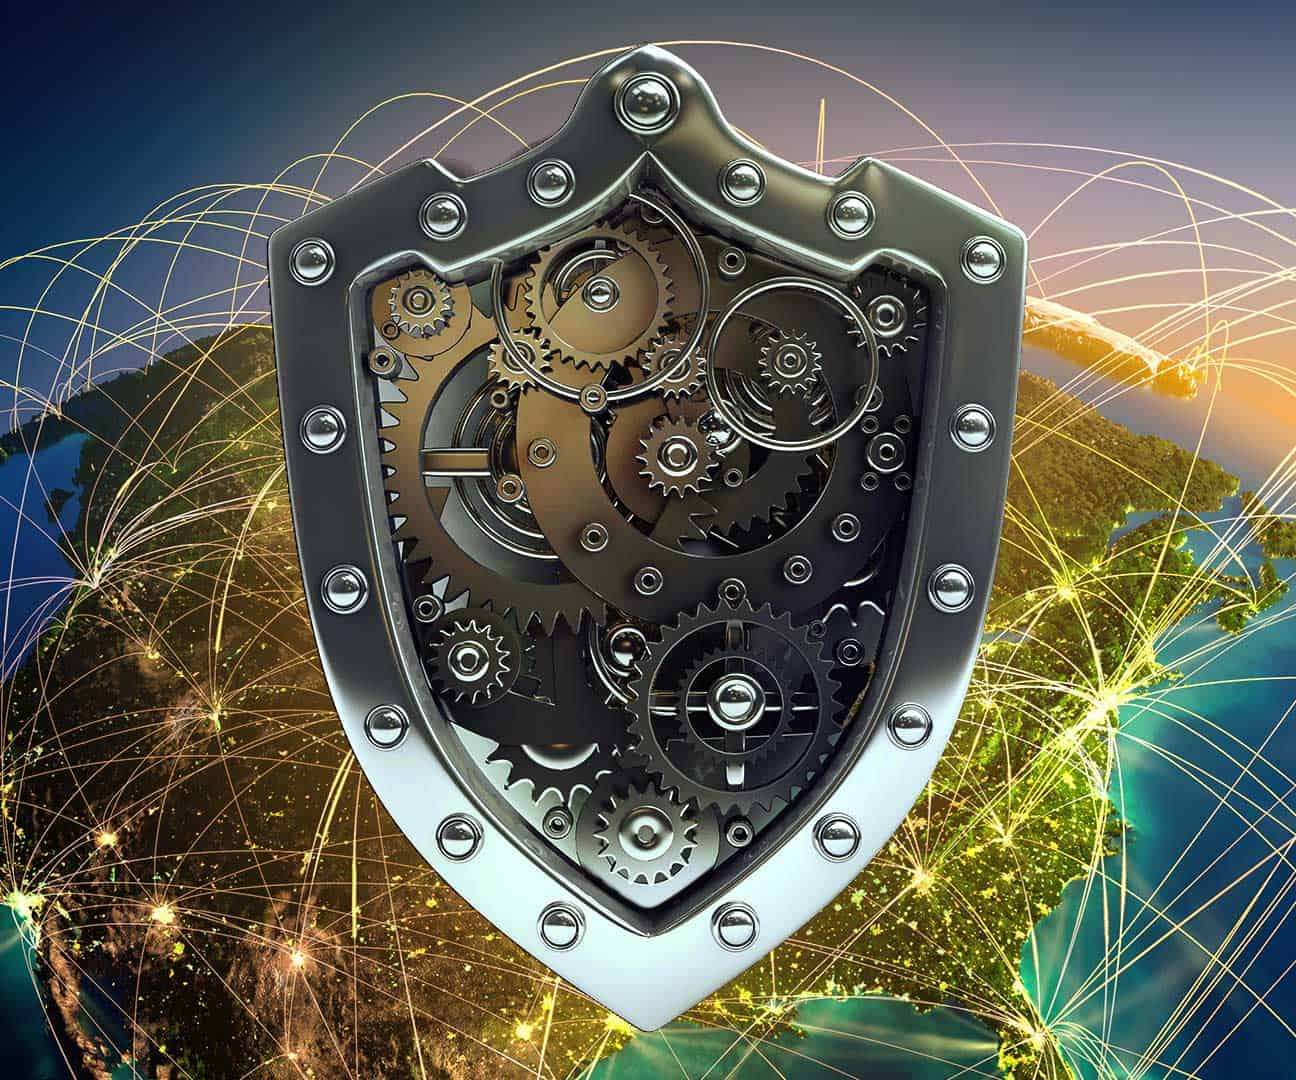 This is an image of the world wide digital net, and dangers it represents